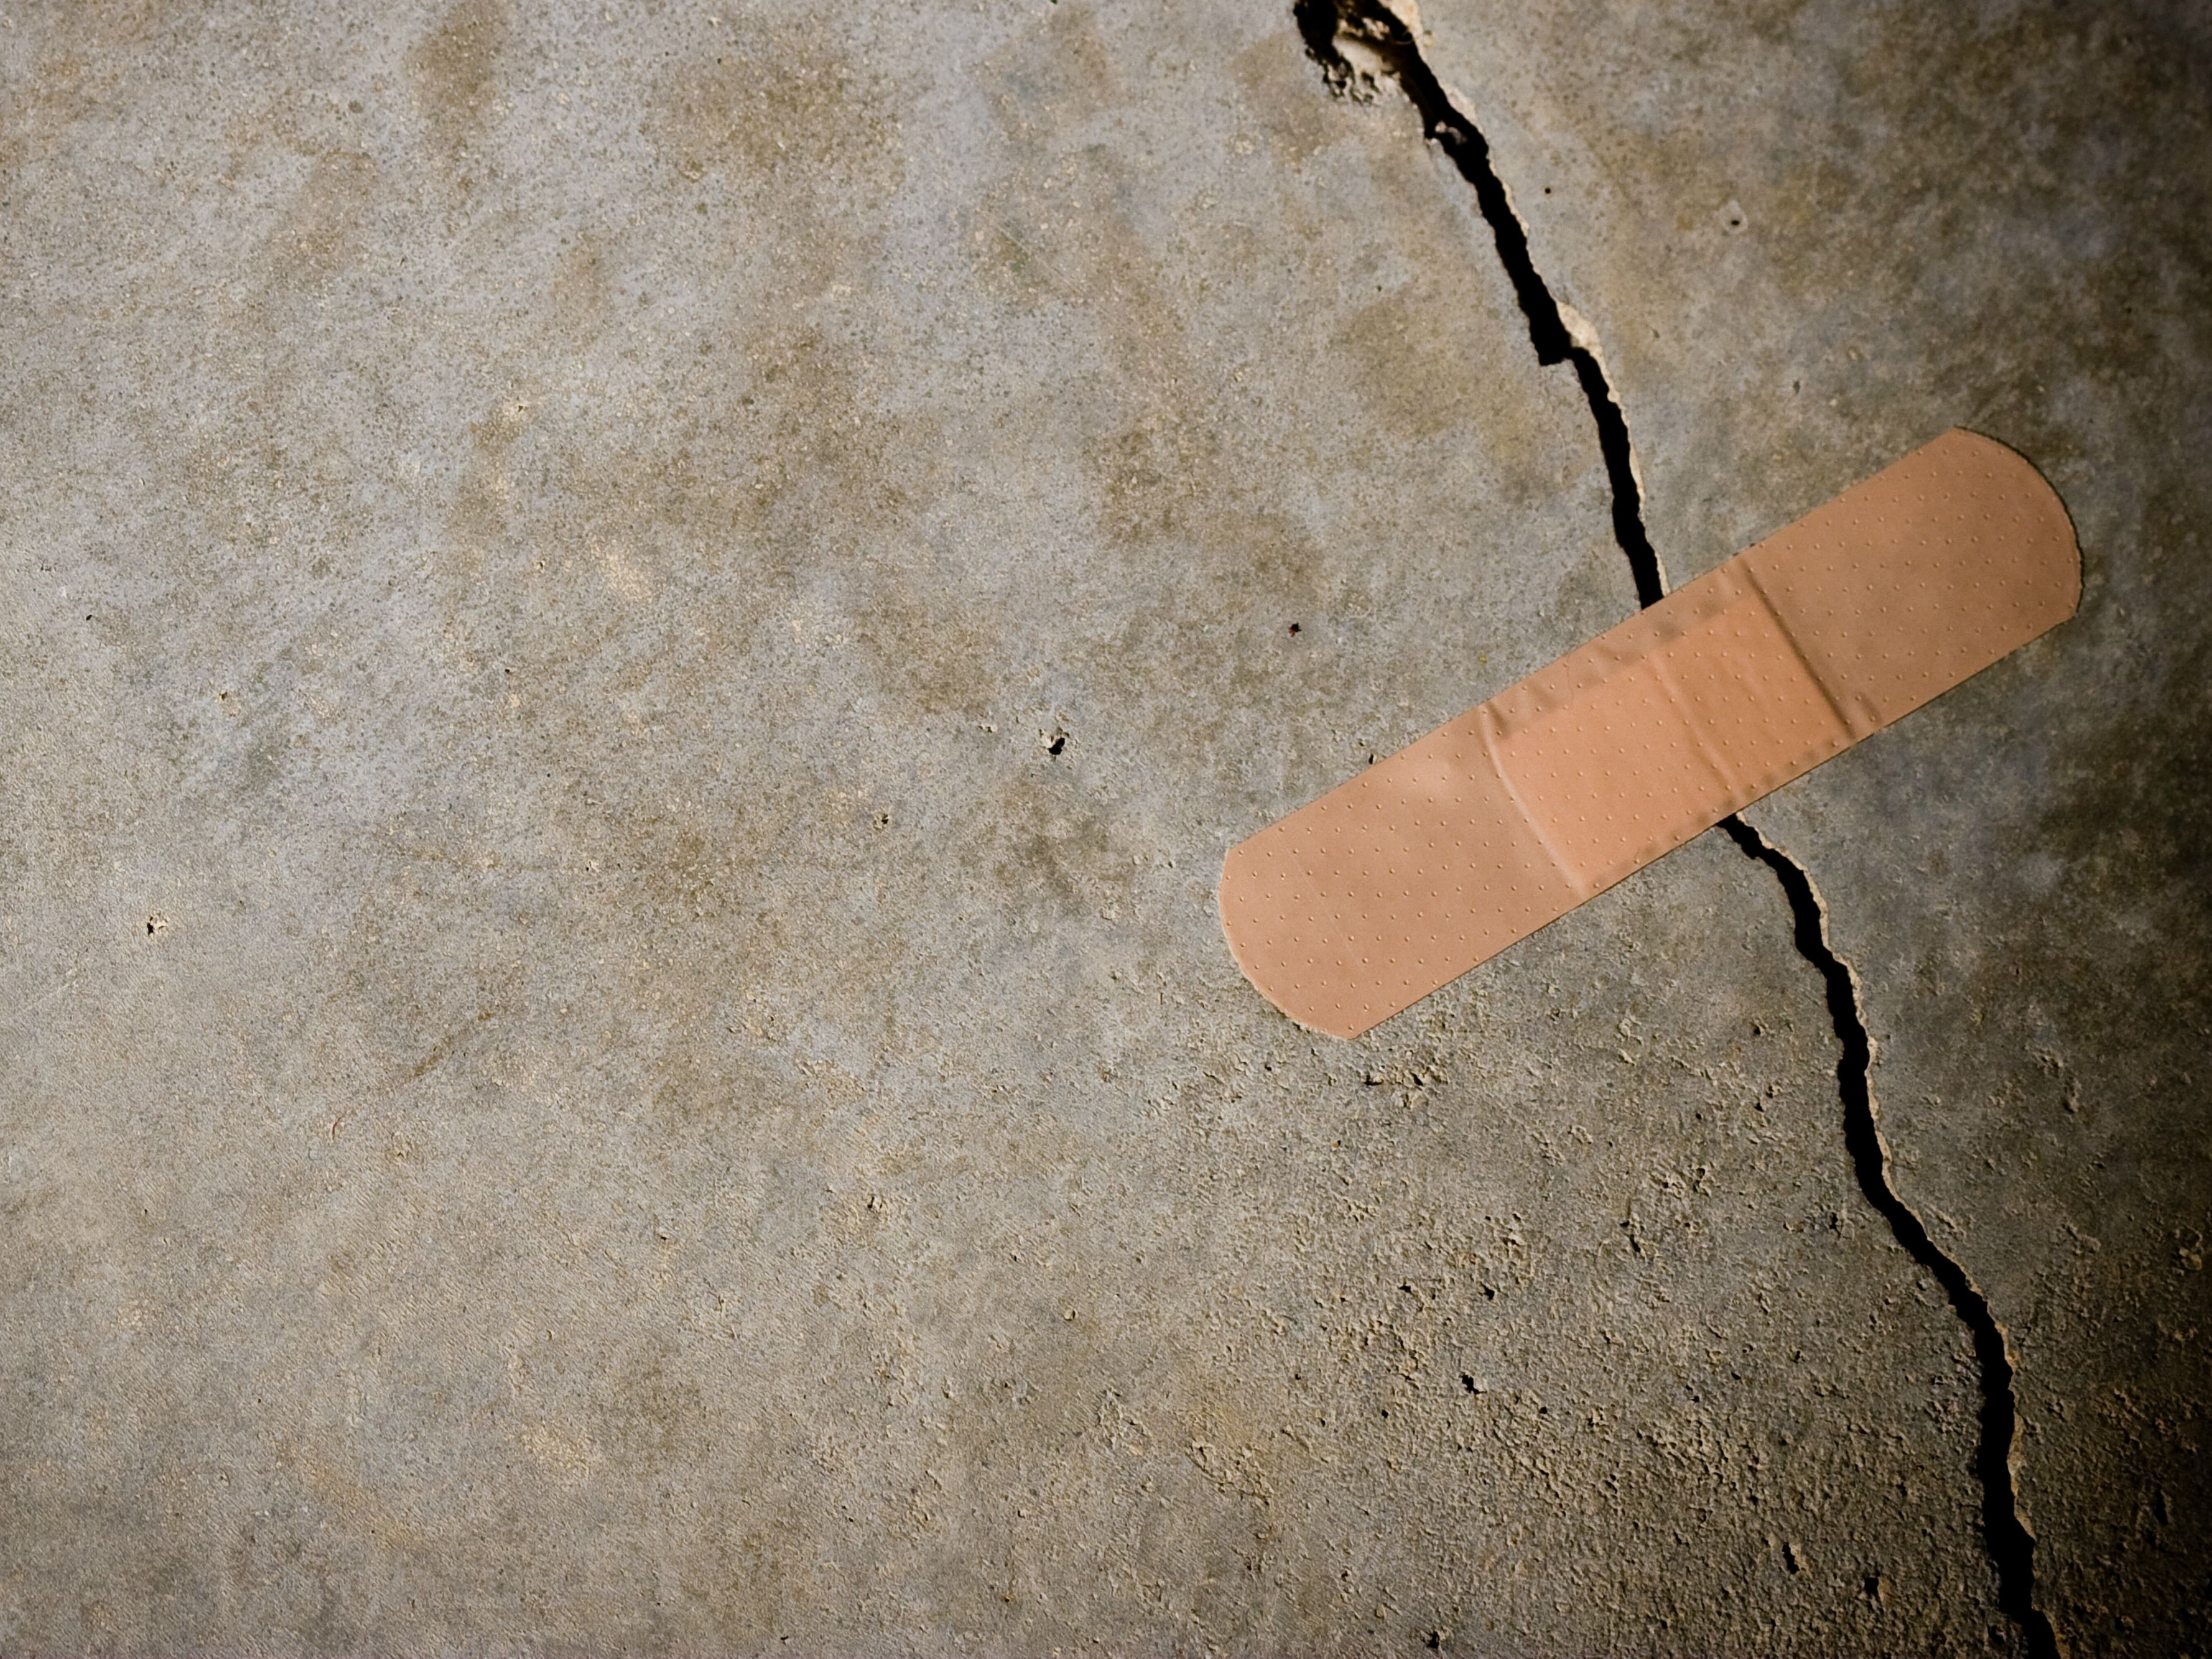 Repairing Concrete Cracks Using Epoxy